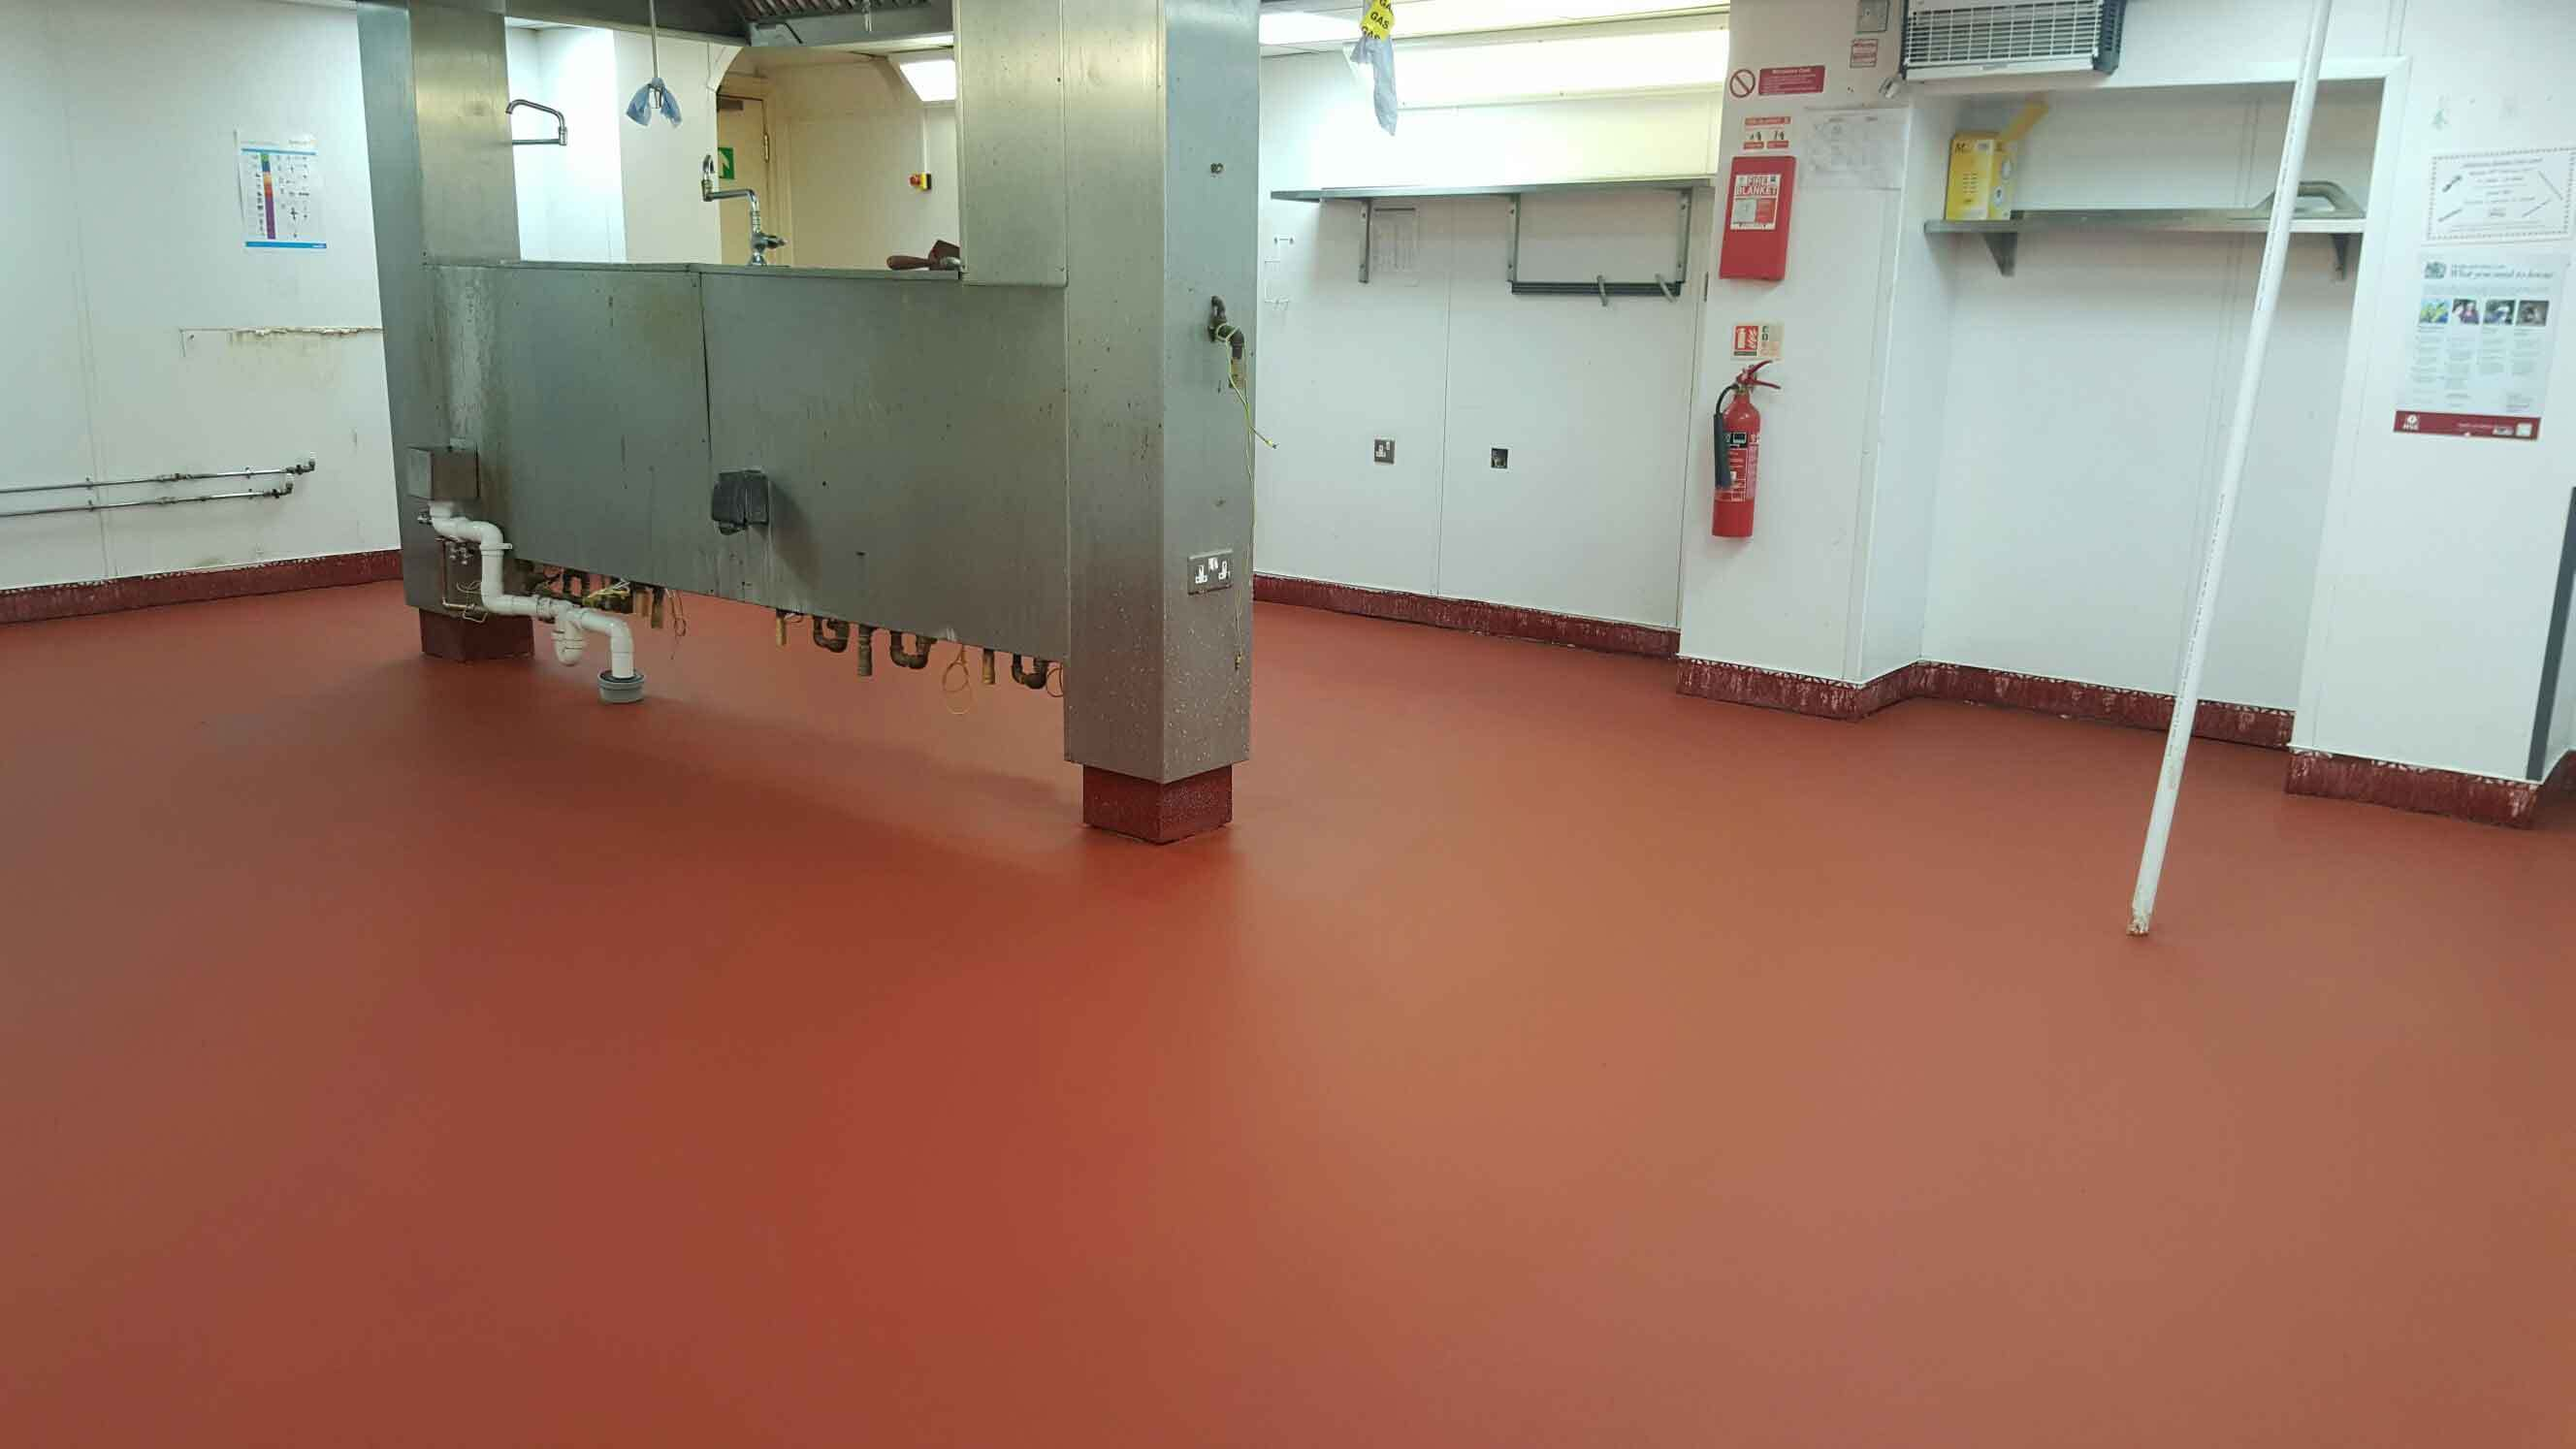 COMMERCIAL KITCHEN FLOORING U2013 4 THINGS YOU NEED TO CONSIDER